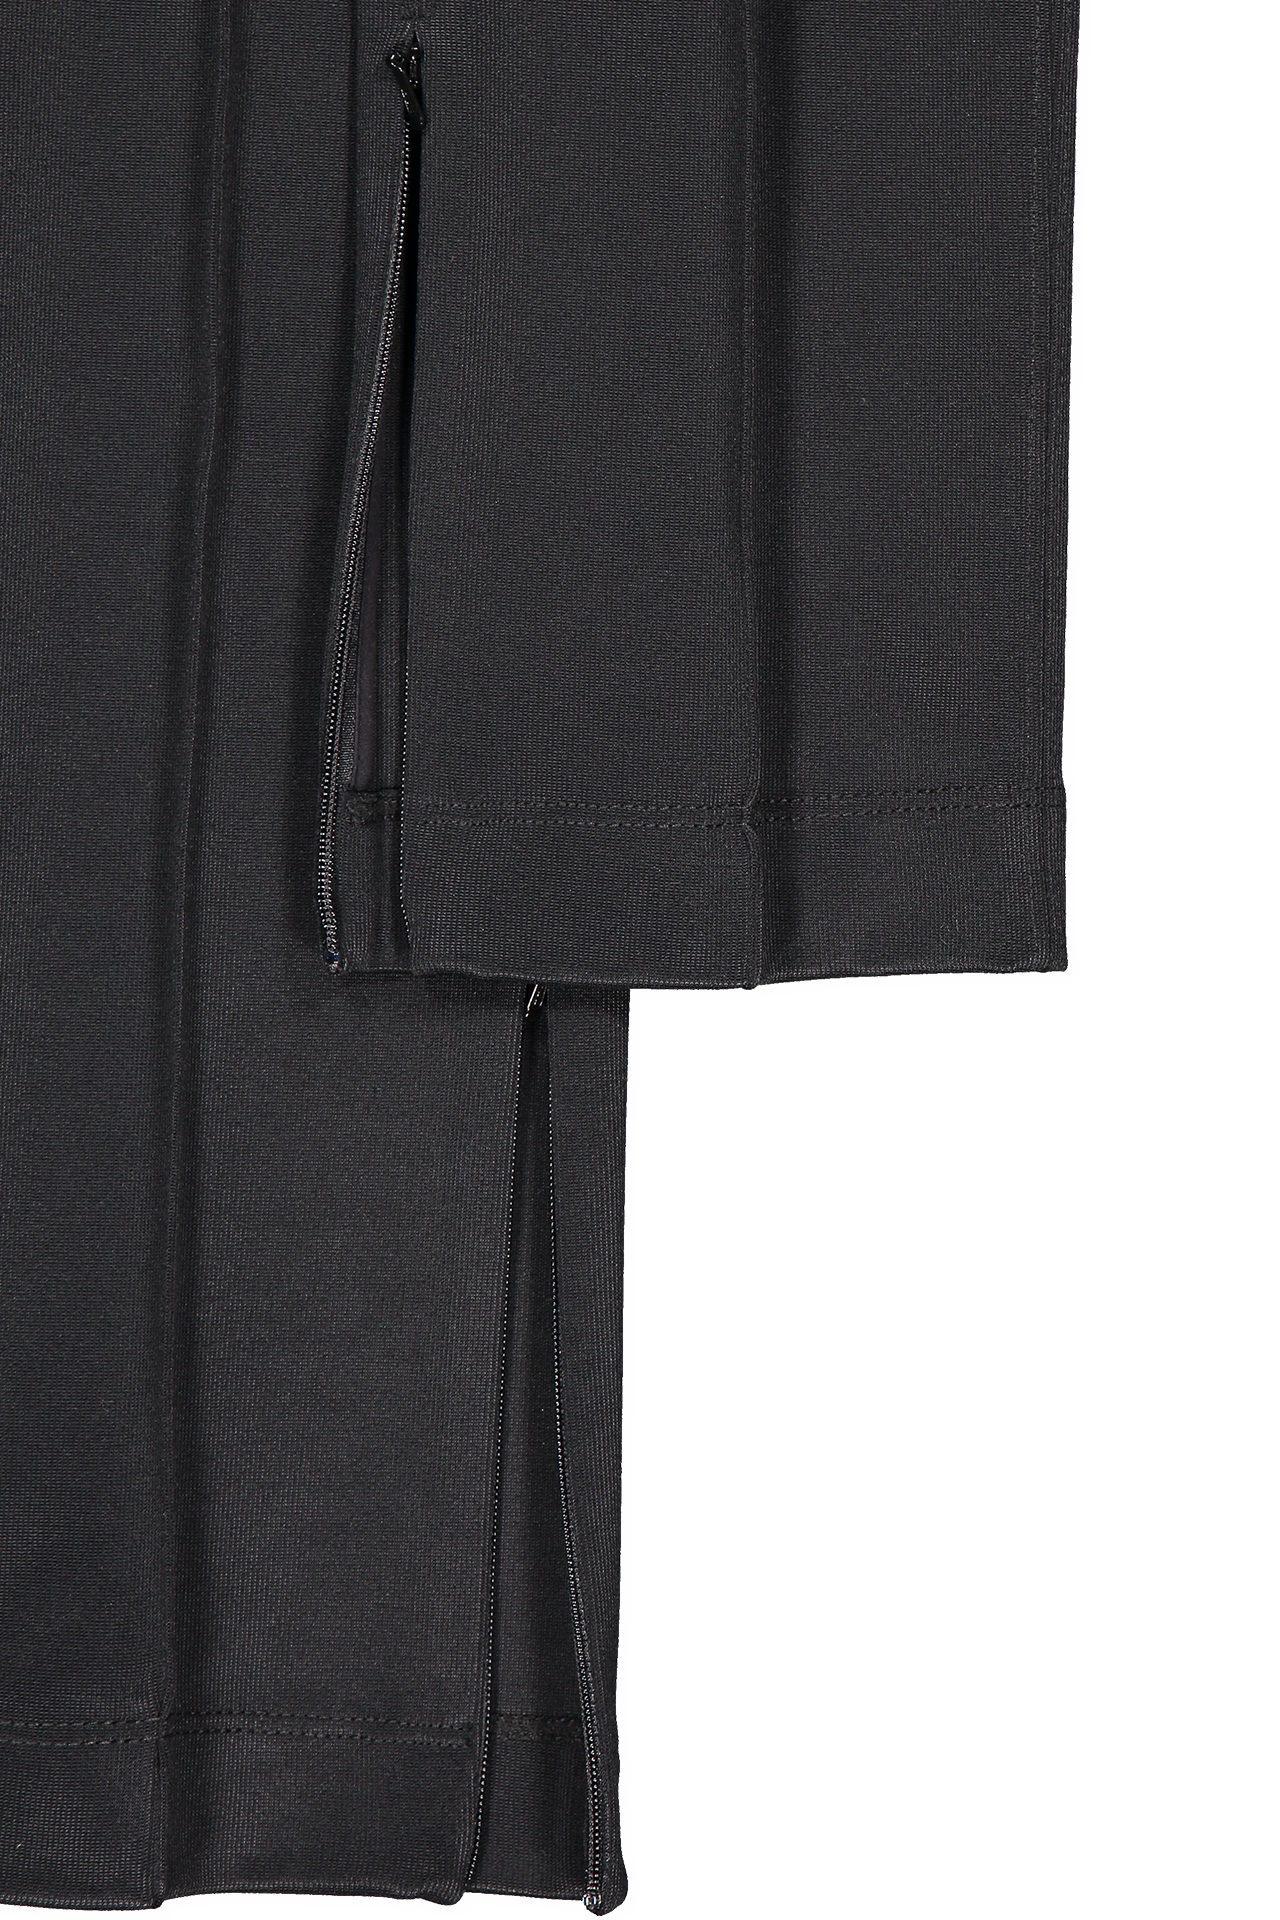 Hemline detail image of Helmut Lang Rib Legging Black